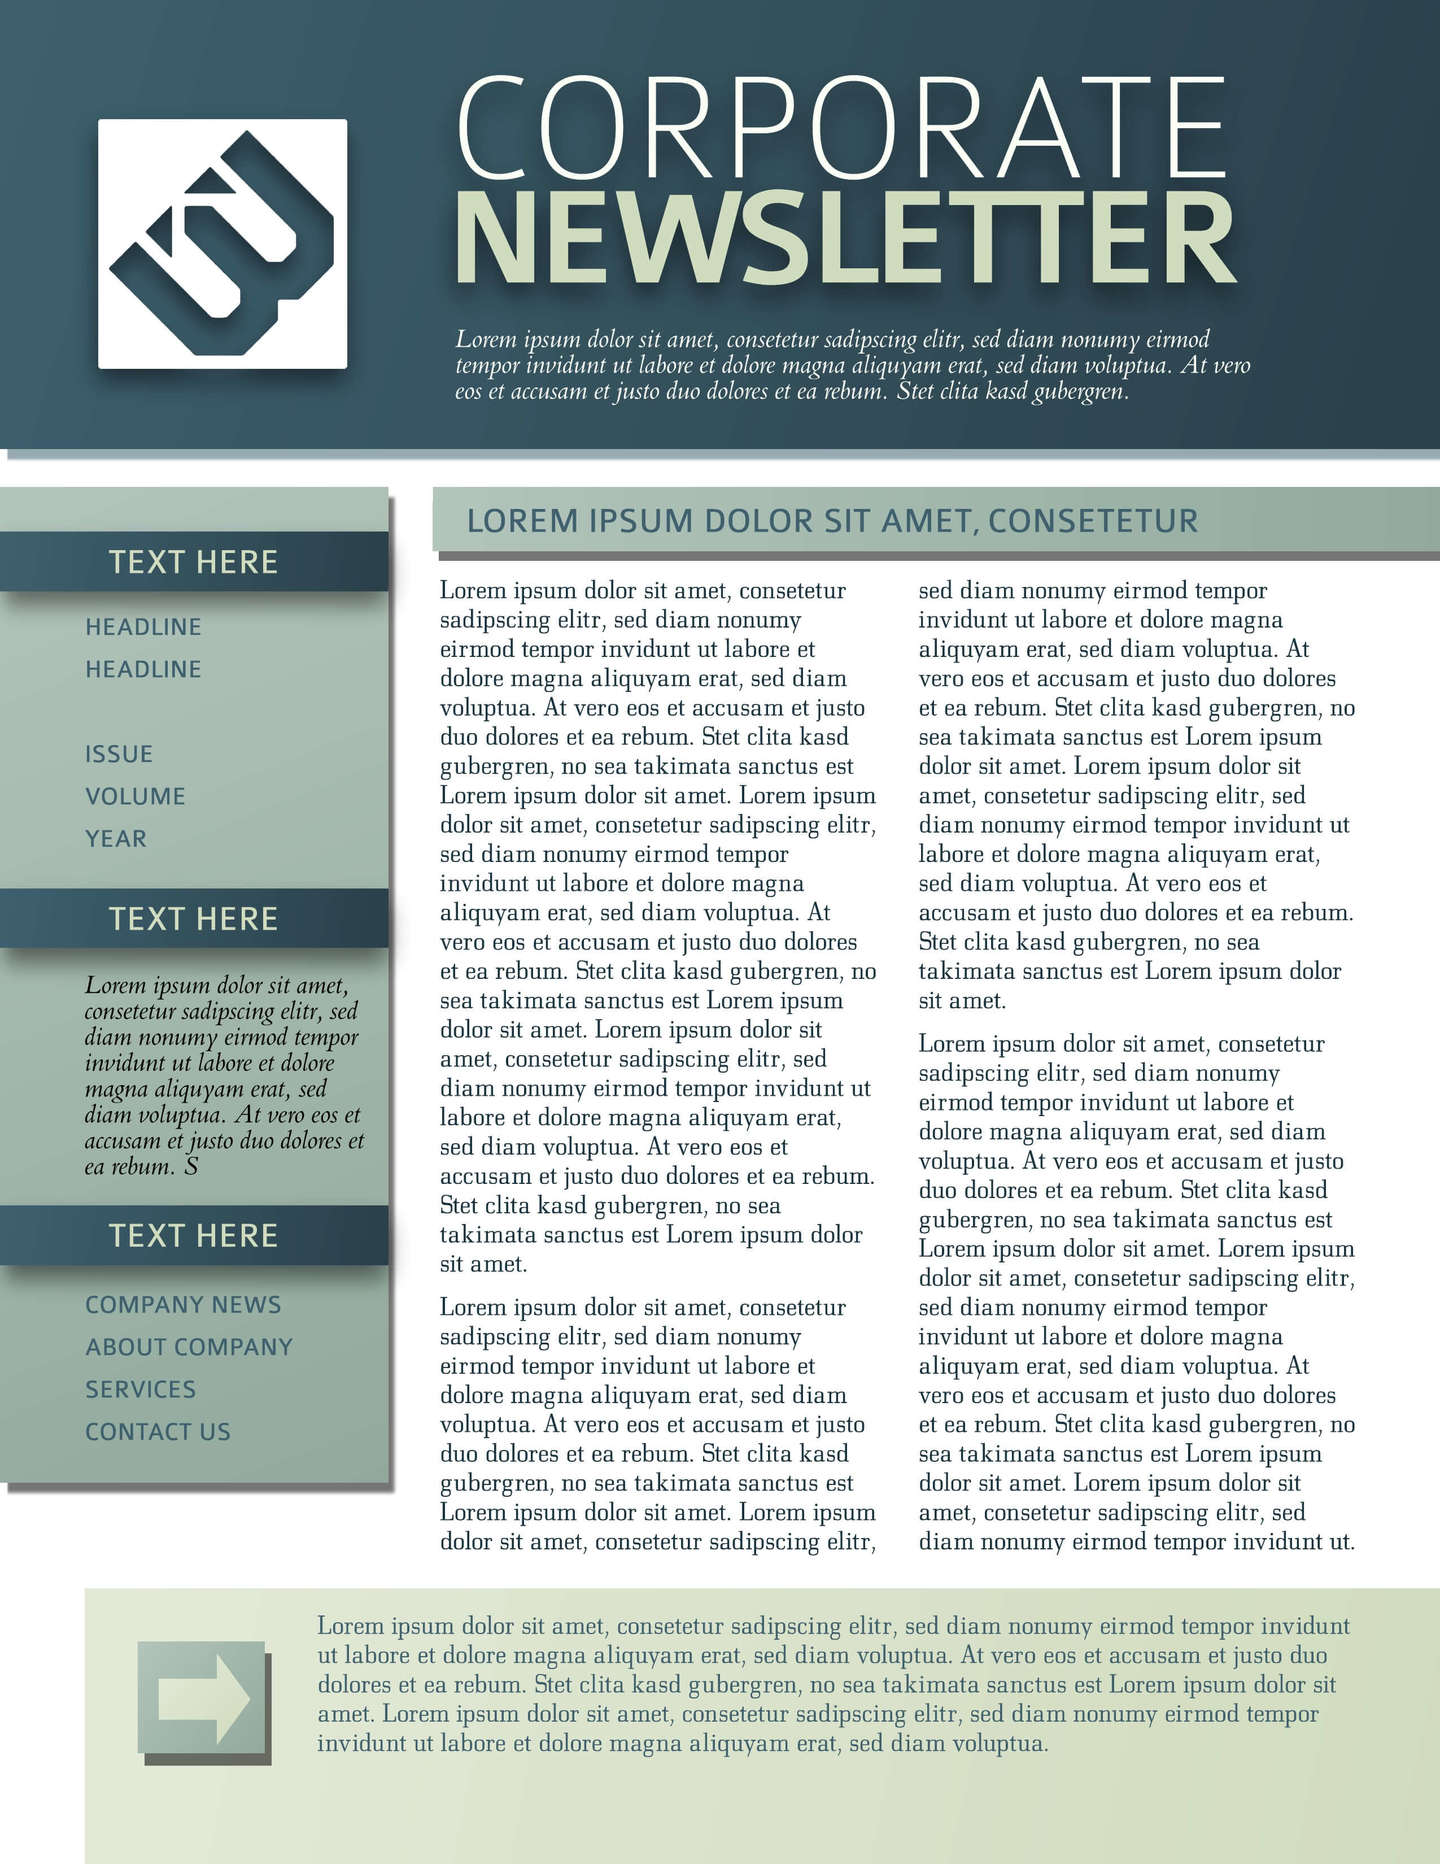 Business newsletter tachrisaniemiec 9 free business newsletters templates accmission Gallery